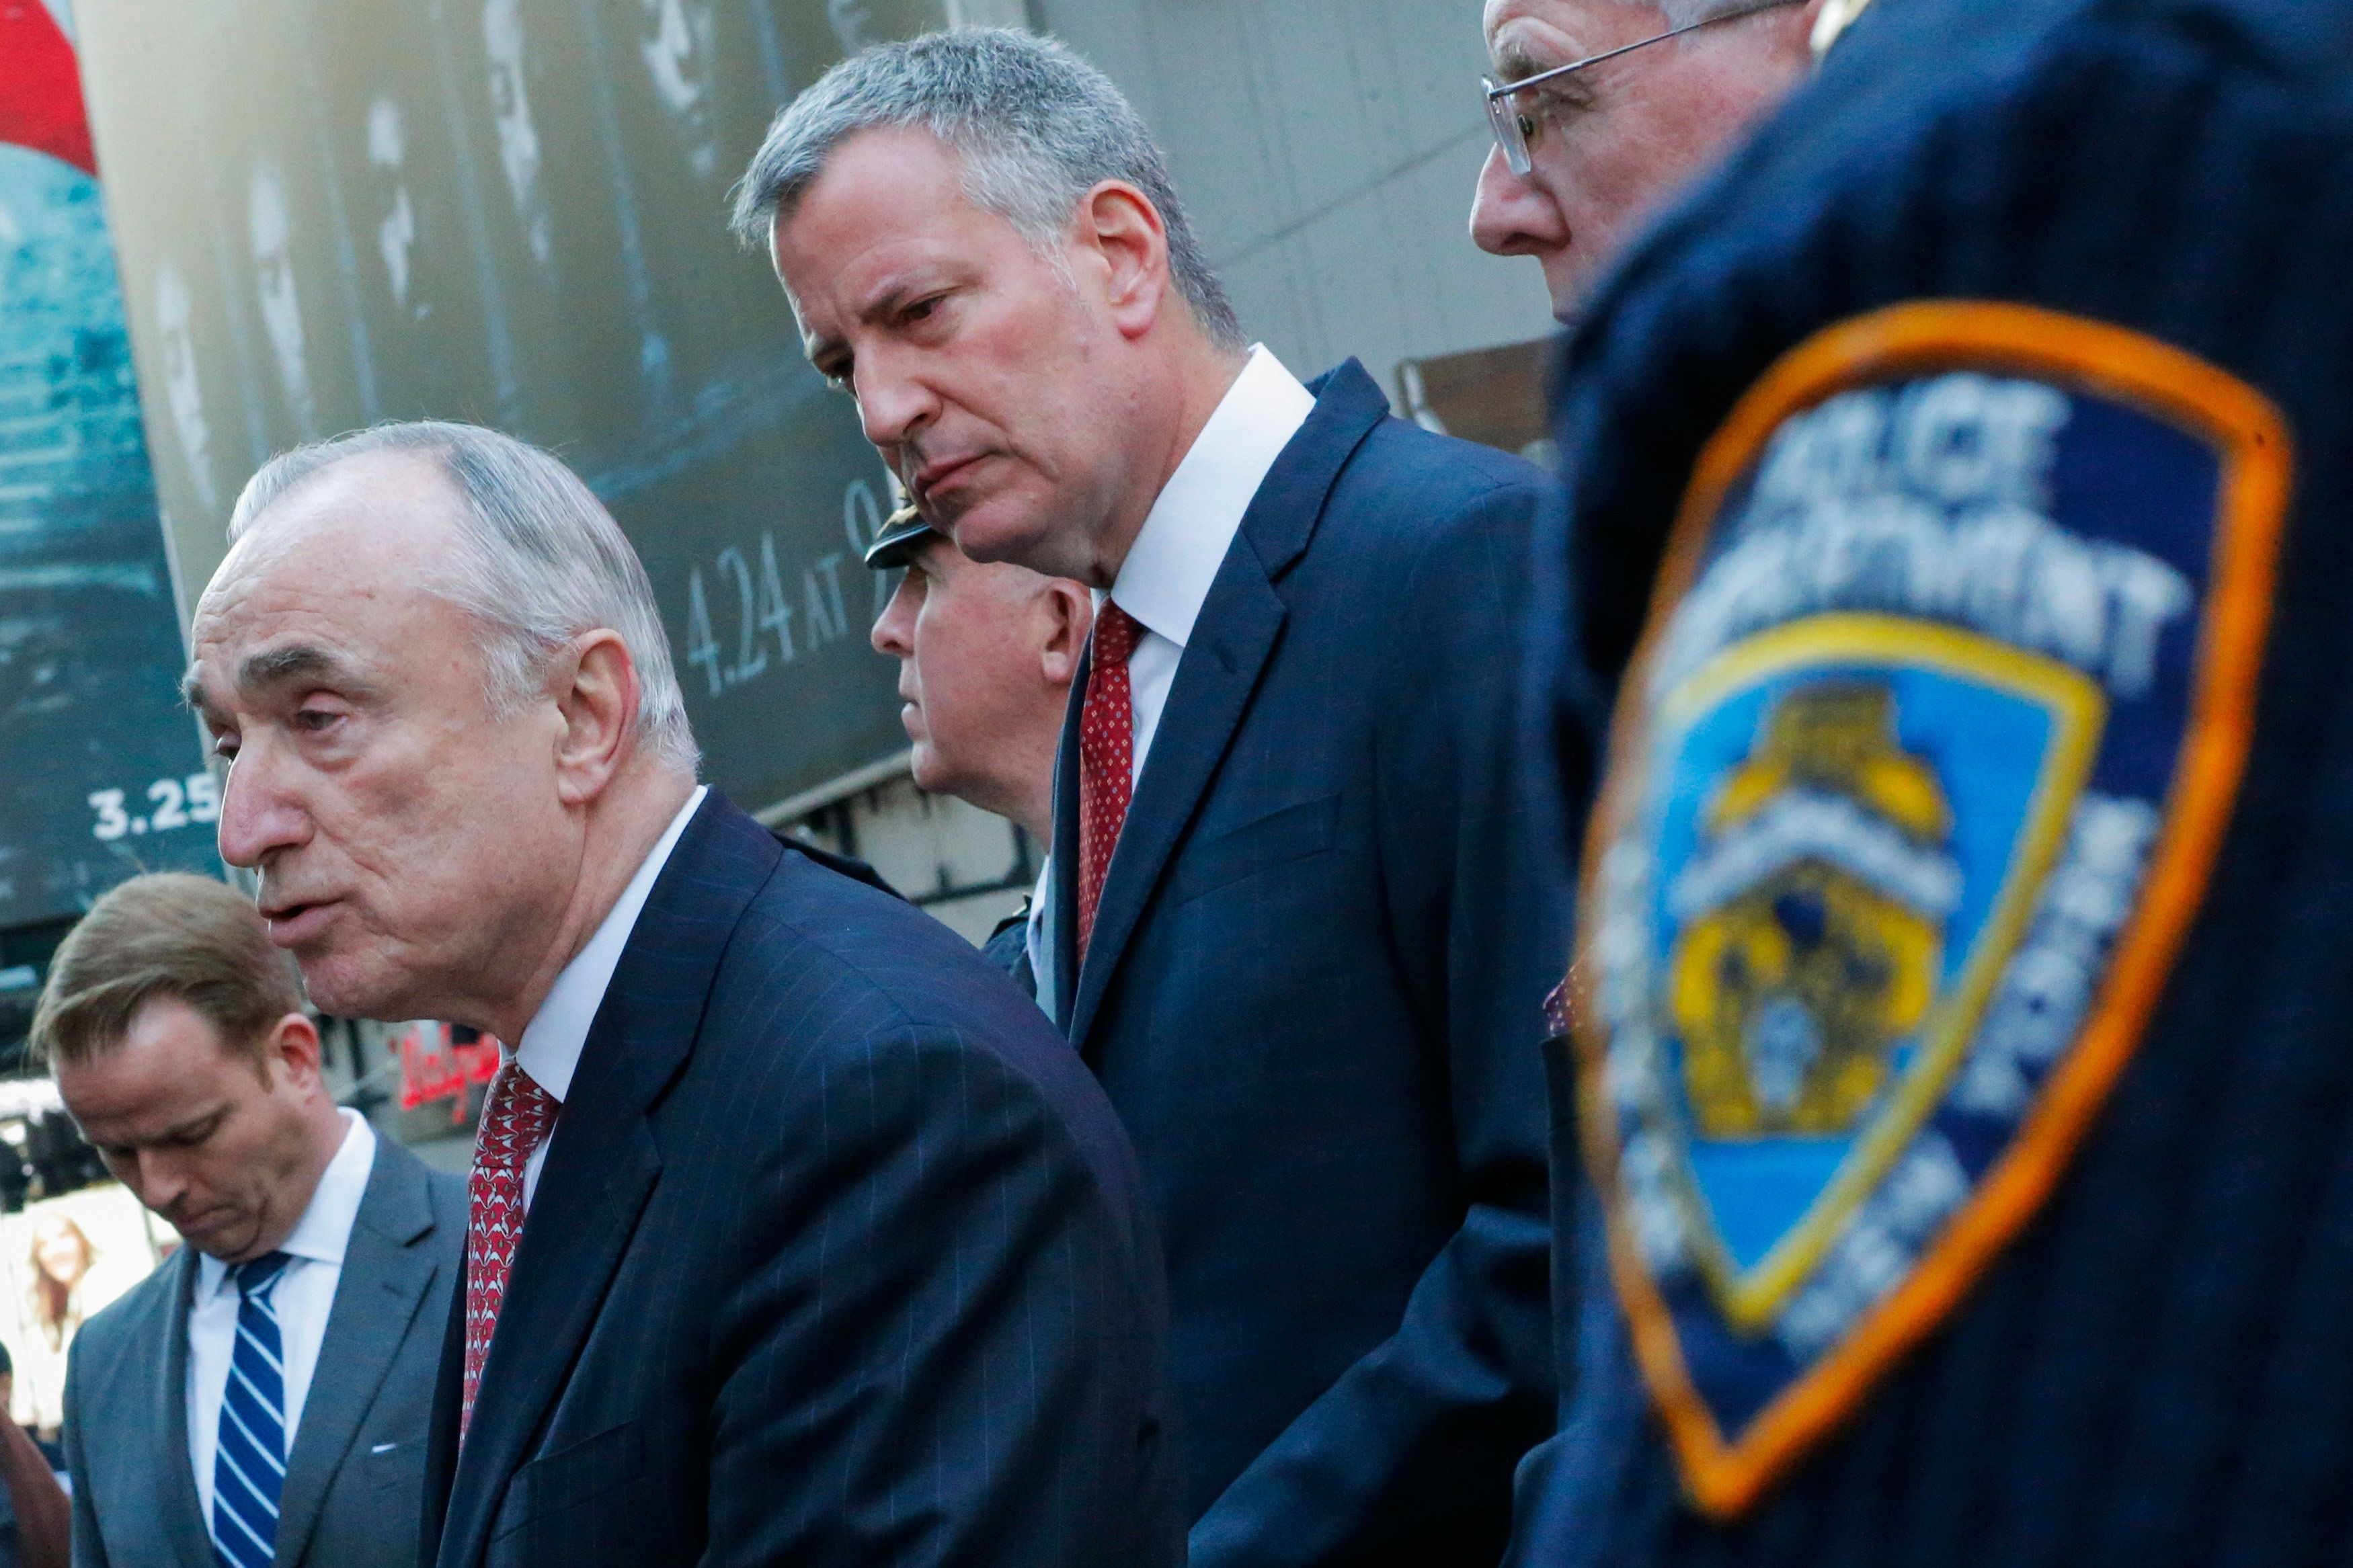 New York Police Commissioner William Bratton (2nd-L) speaks to the media next to New York City Mayor Bill de Blasio (C) in New York, March 22, 2016, following a series of bombings claimed by the Islamic State group in Brussels, Belgium.  Airports across Europe swiftly boosted security, while across the Atlantic, New York and Washington ordered security personnel to key areas. / AFP / EDUARDO MUNOZ        (Photo credit should read EDUARDO MUNOZ/AFP/Getty Images)